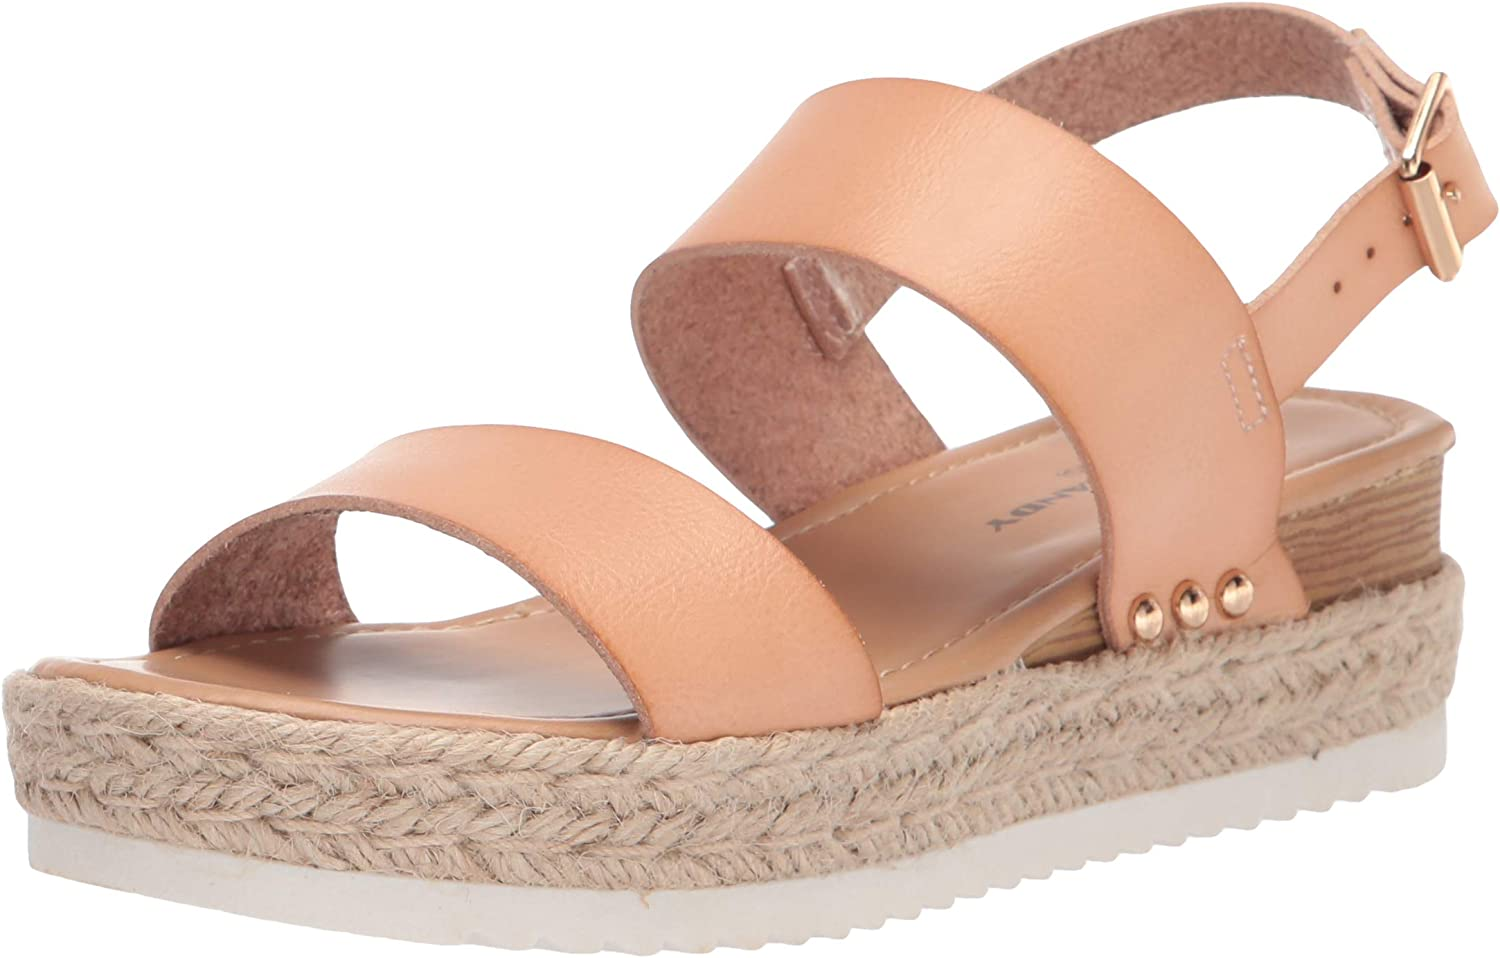 Rock Candy Limited time cheap sale Women's Animer and price revision Sandal Buckle Wedge